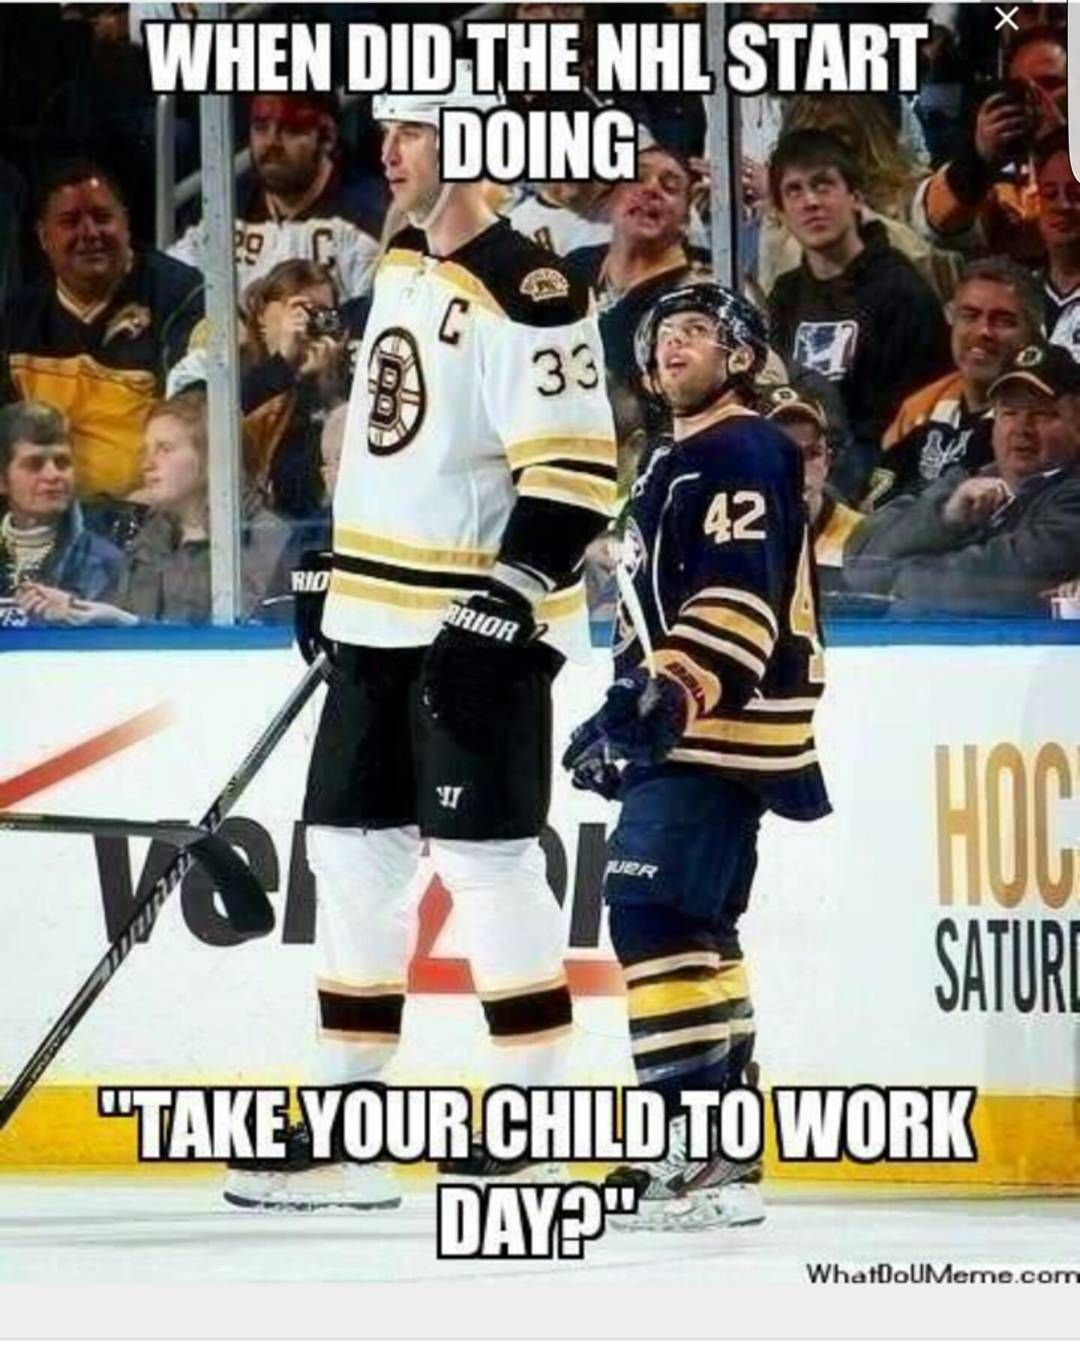 Nhl Memes Jokes And Videos On Instagram Tag A Bud Who D Laugh At This Follow Puckland For Amazing Hockey Hockey Humor Funny Hockey Memes Hockey Memes